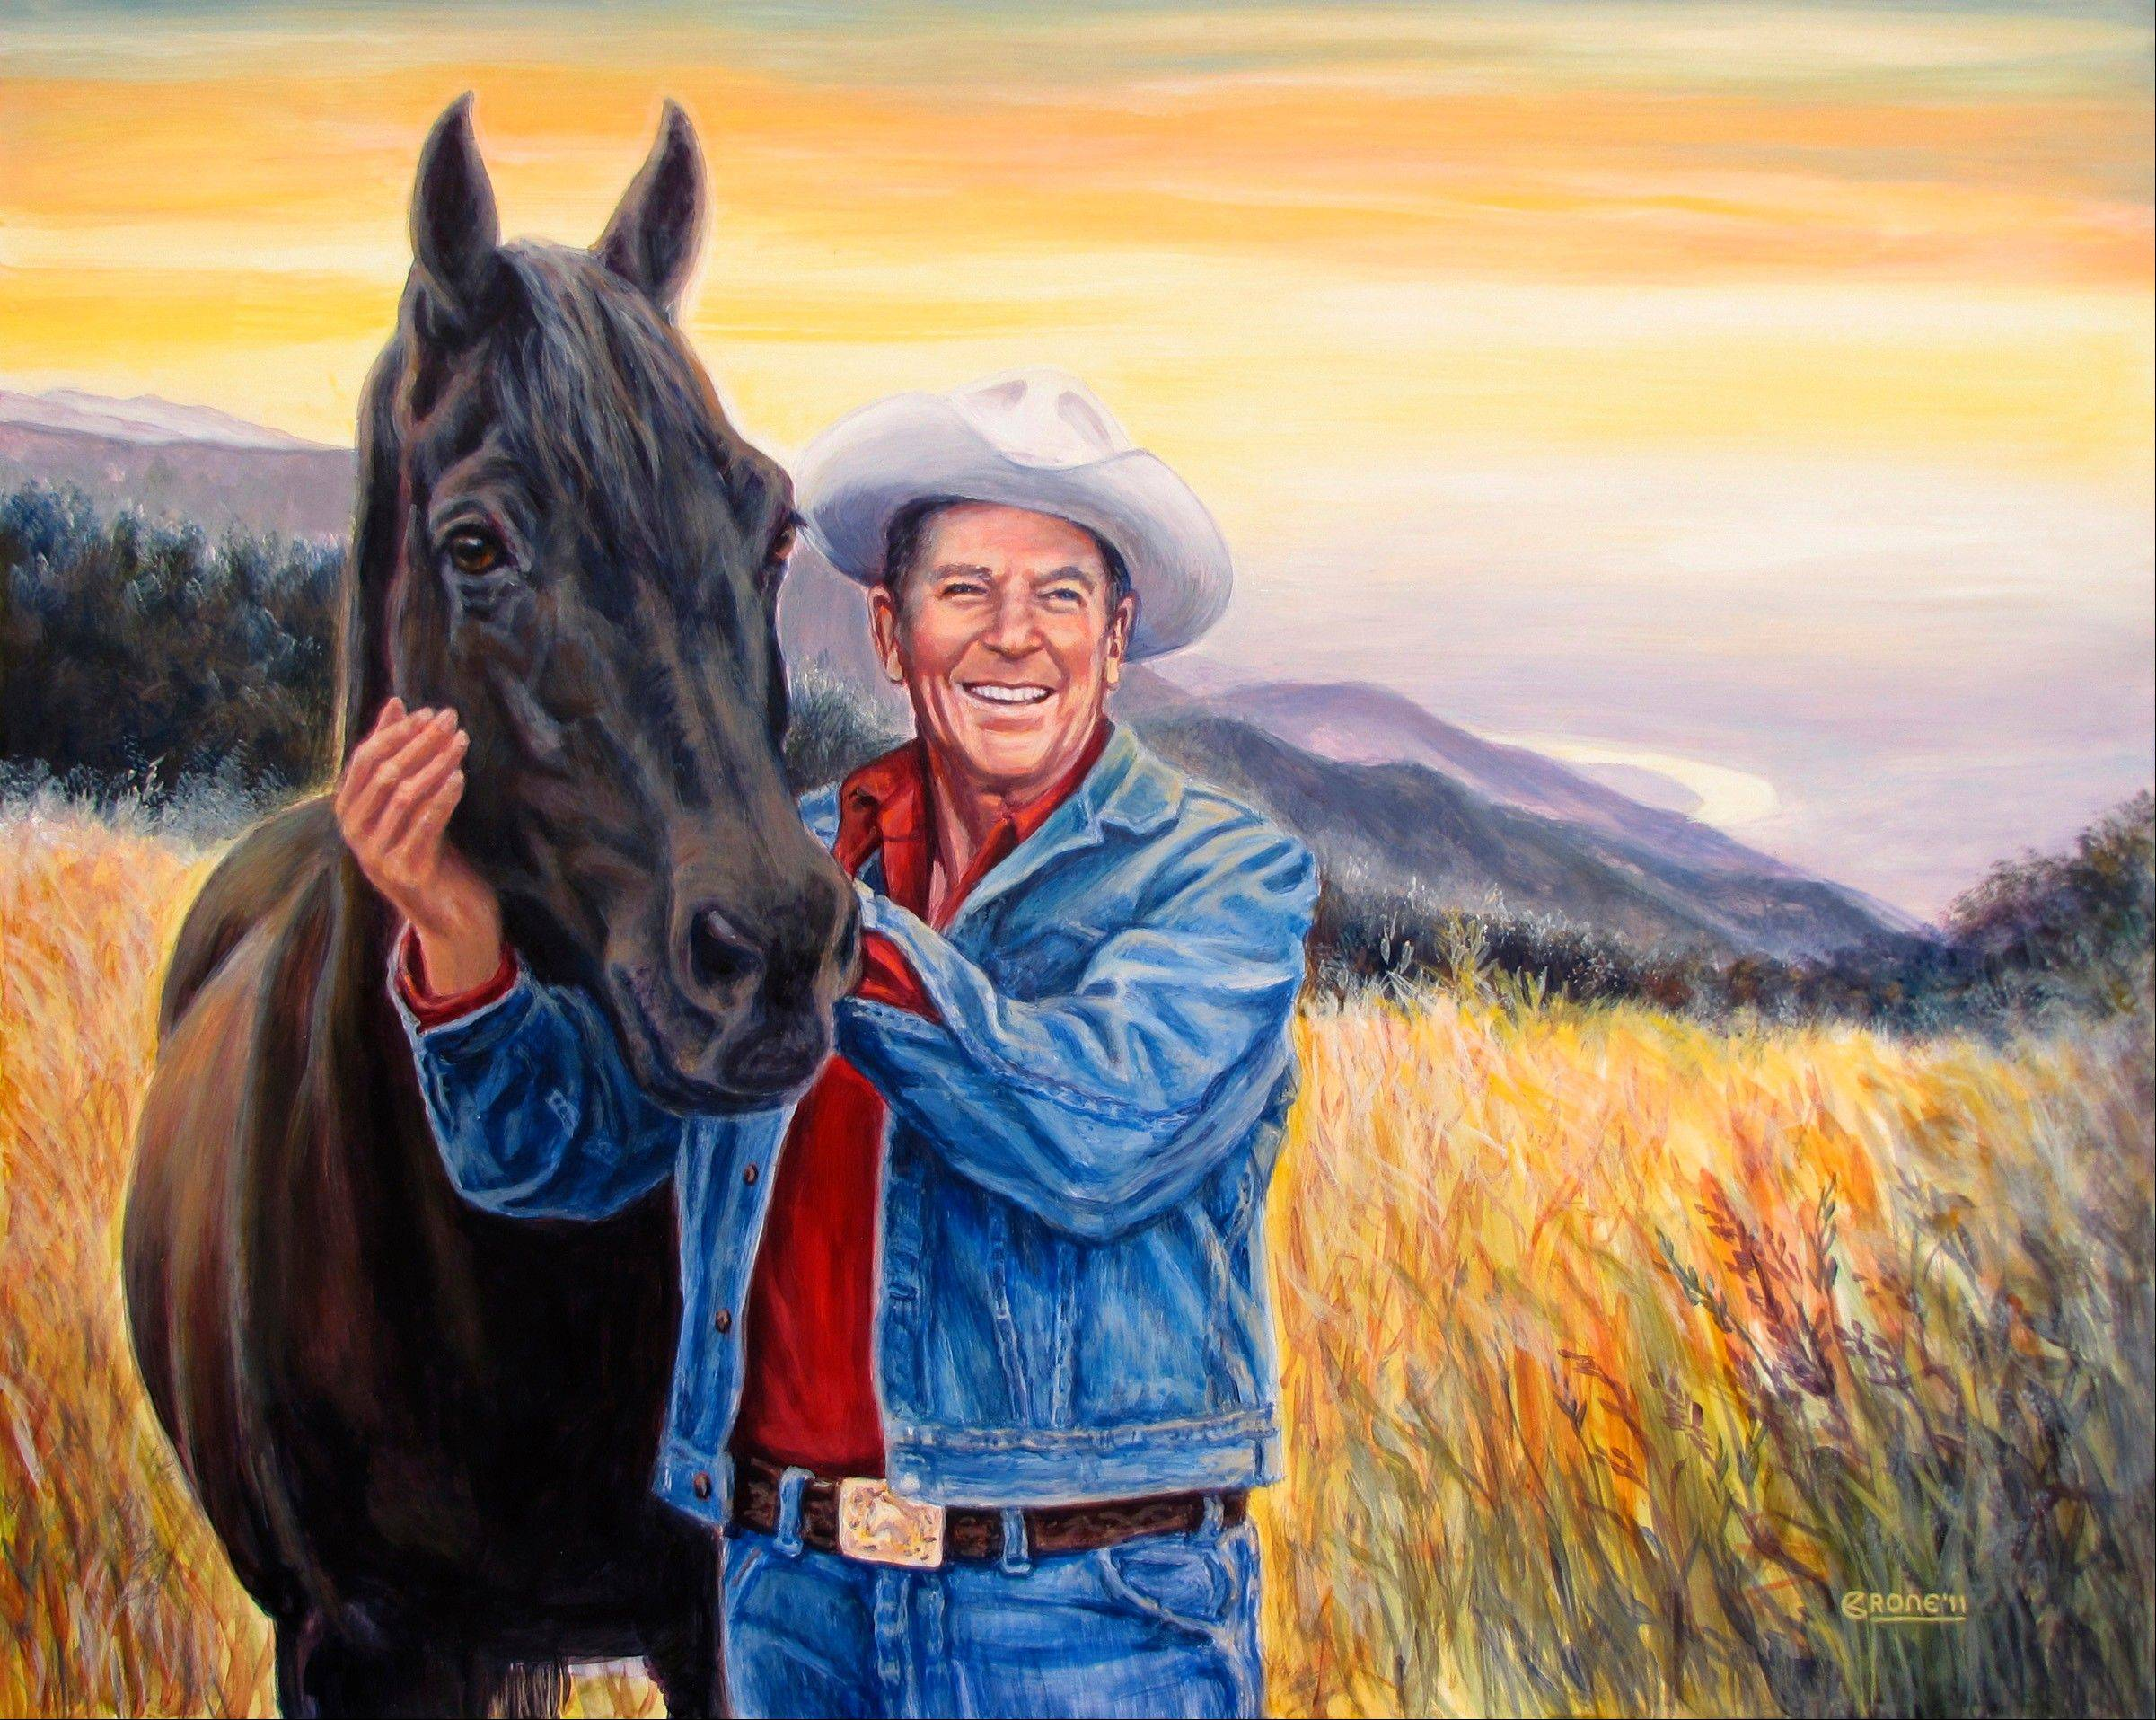 Vicki Crone�s acrylic painting �Land of the Free� shows former President Ronald Reagan with an unbridled horse at his ranch in Santa Barbara, Calif. The painting won the top award last month at an art competition in Dixon, Ill., where the late president was raised, and it is currently on display at the Reagan Ranch and Ranch Center in Santa Barbara until June 2012.